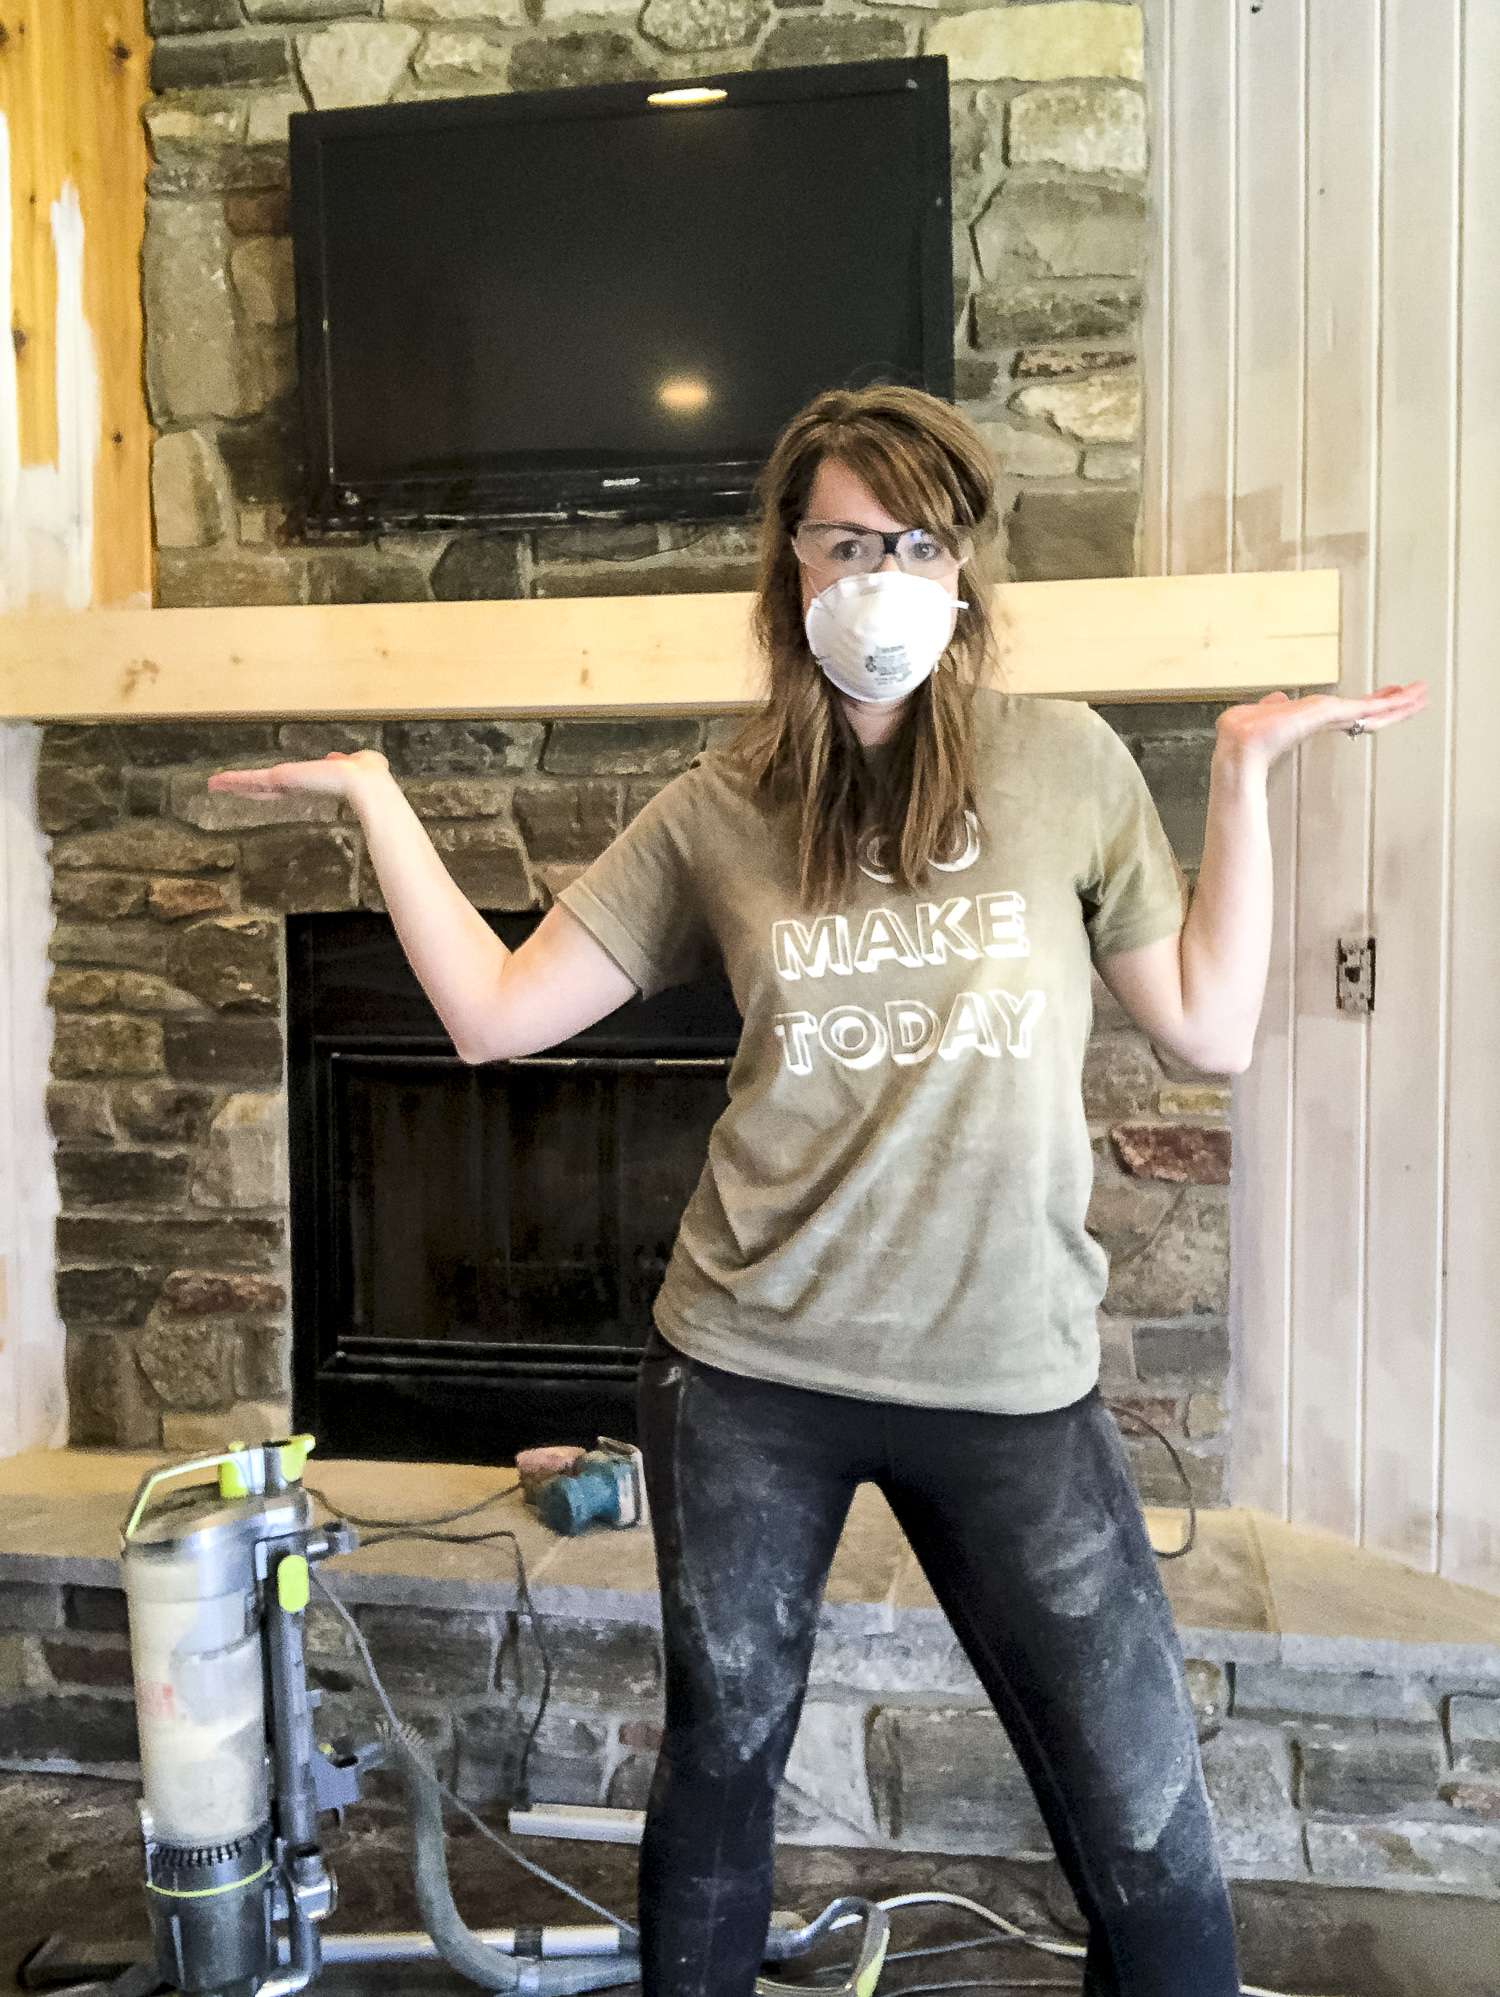 Sanding down a mantel